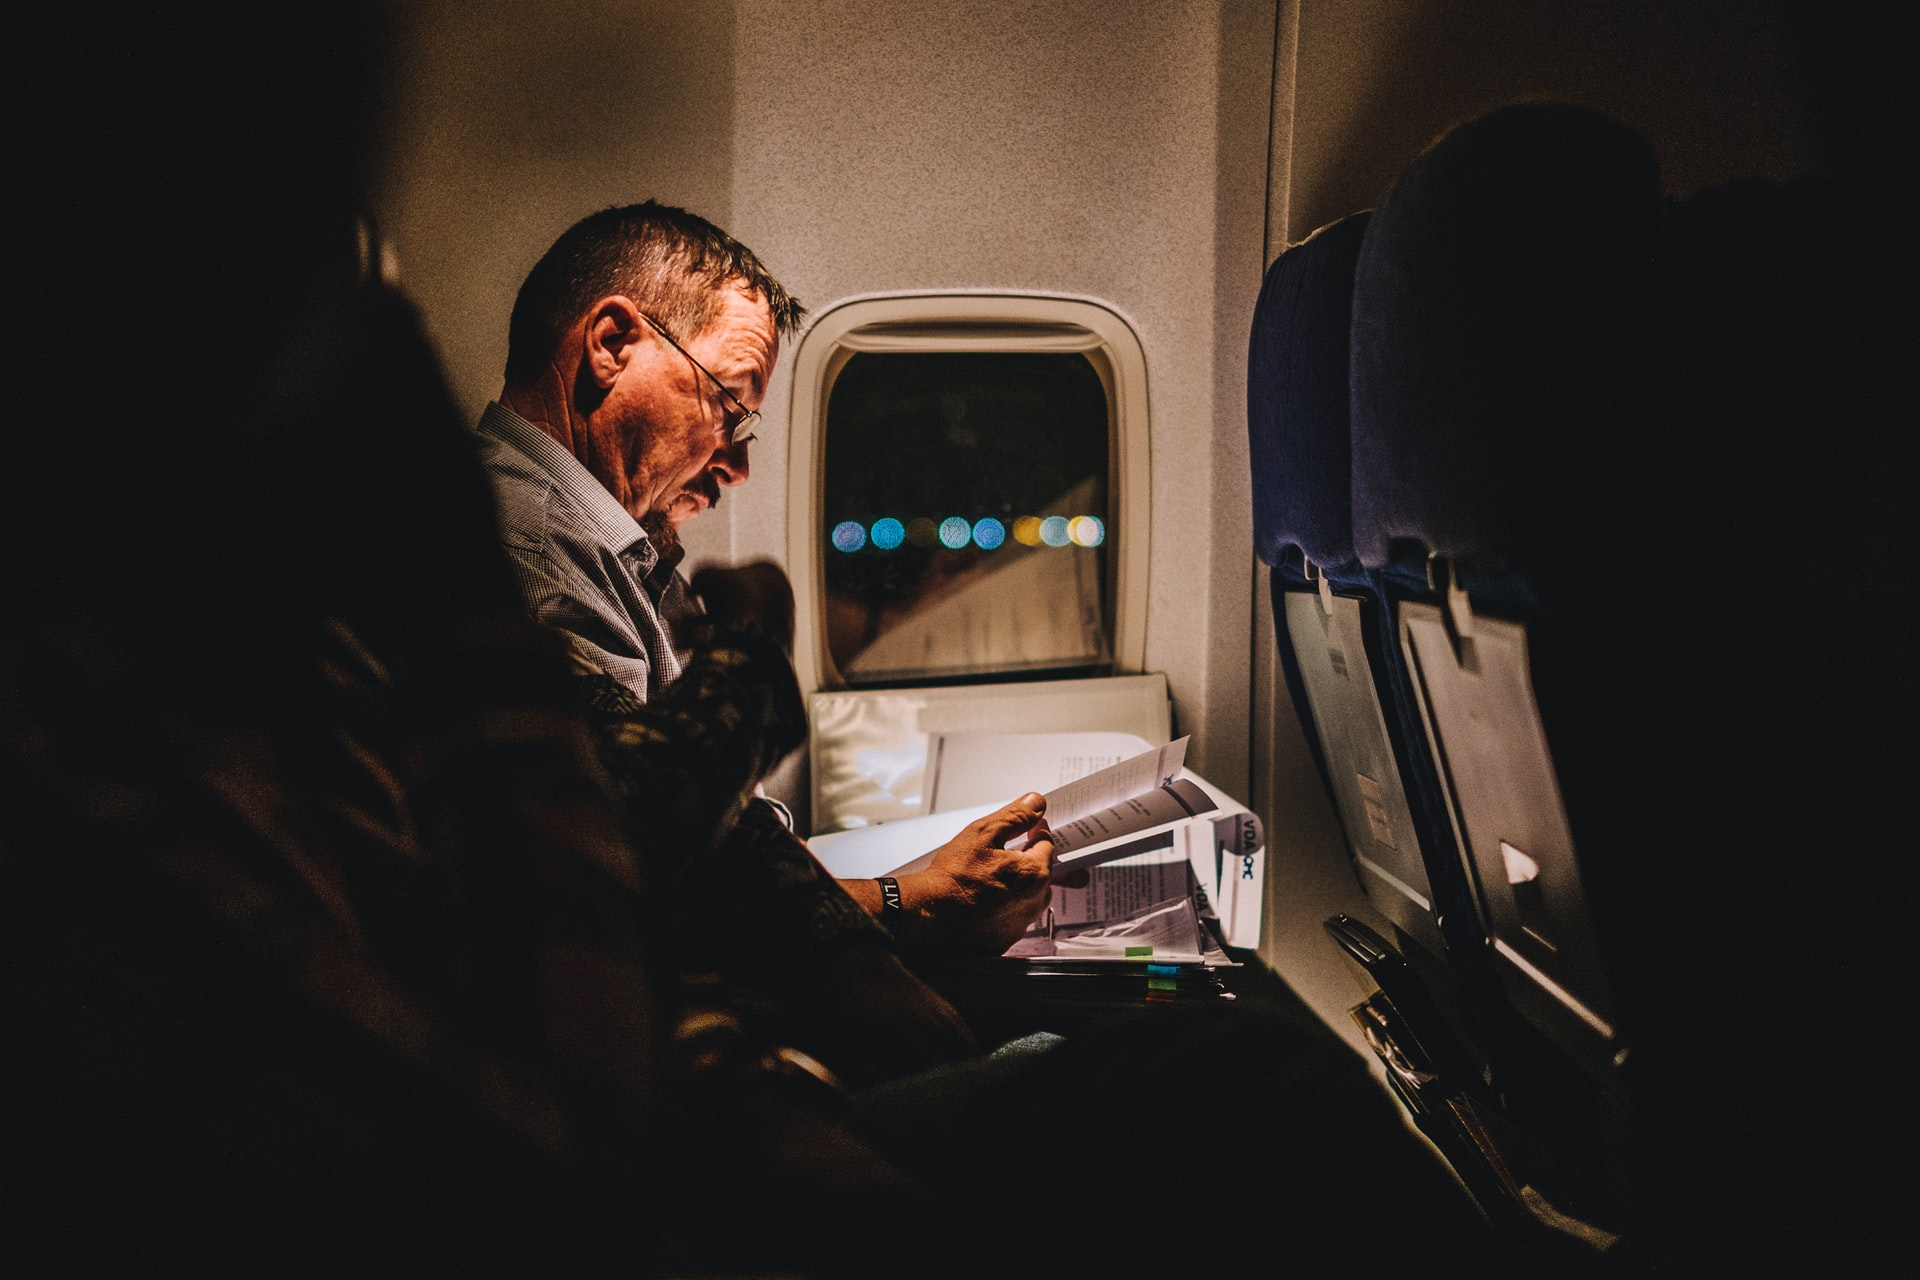 Automating Cancellation & Refund Queue Requests for a Leading American Airline